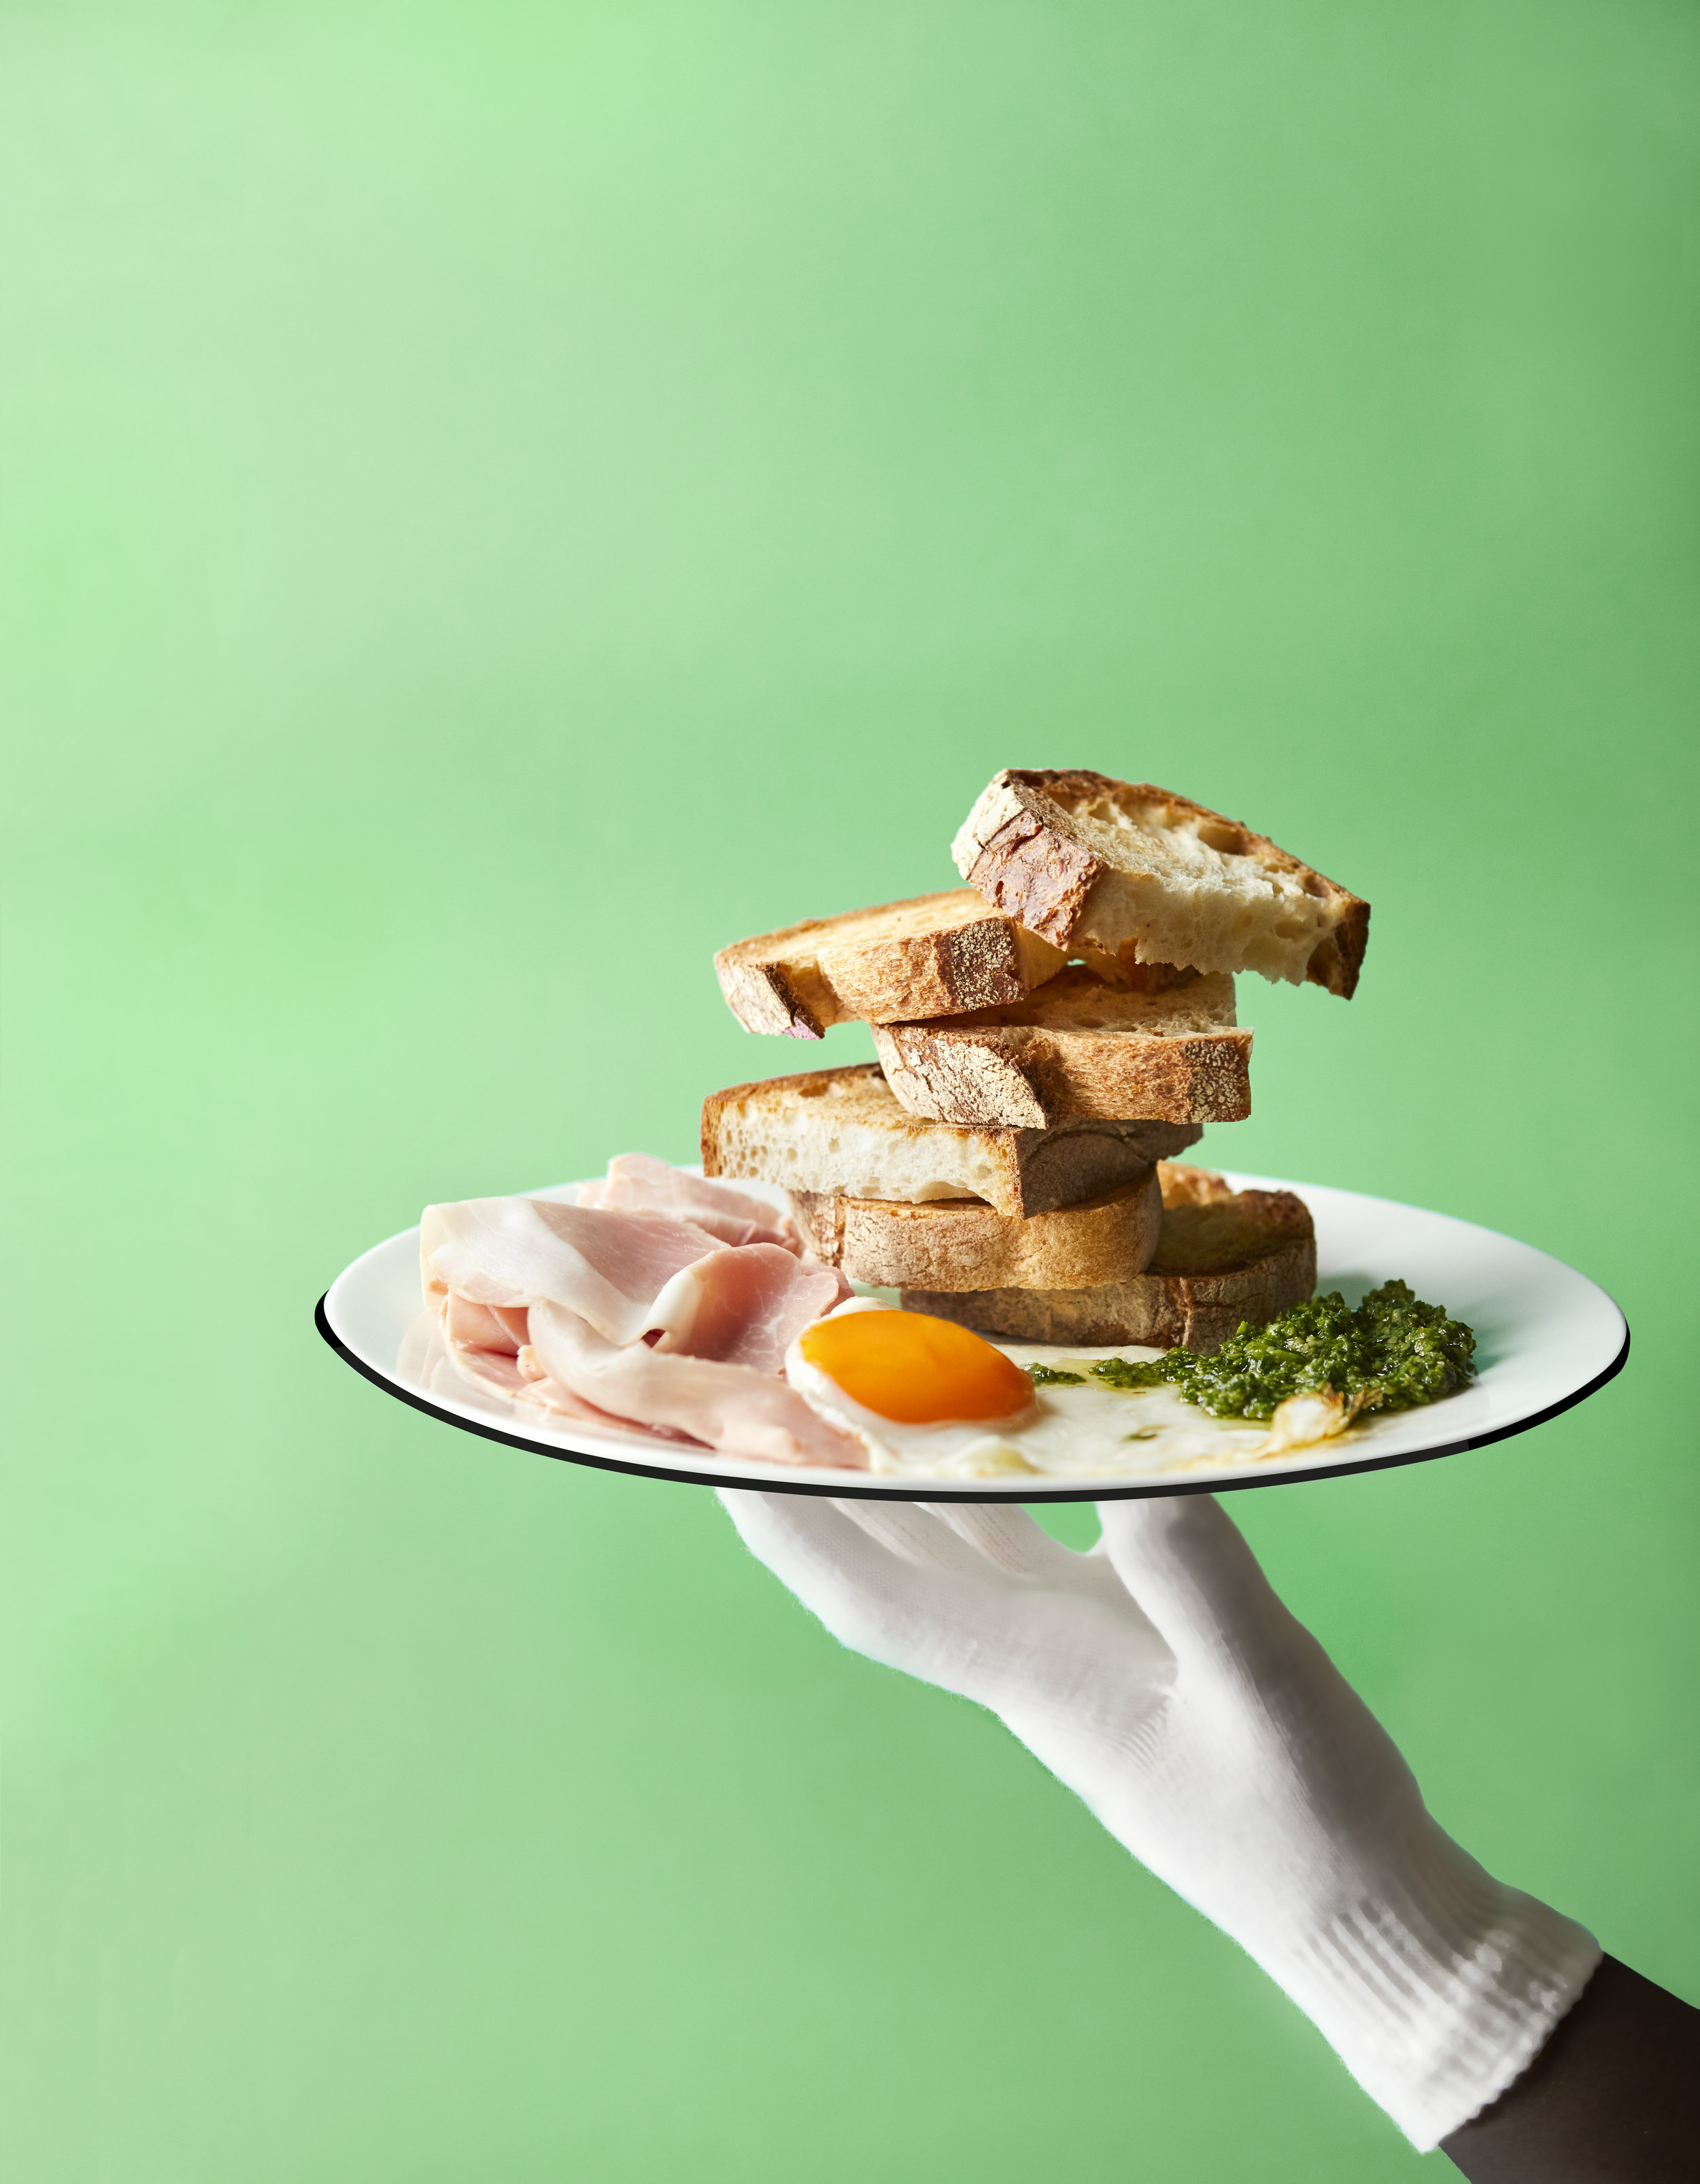 02_Waitrose Literacy feast shoot Dr Suess food plate.jpg